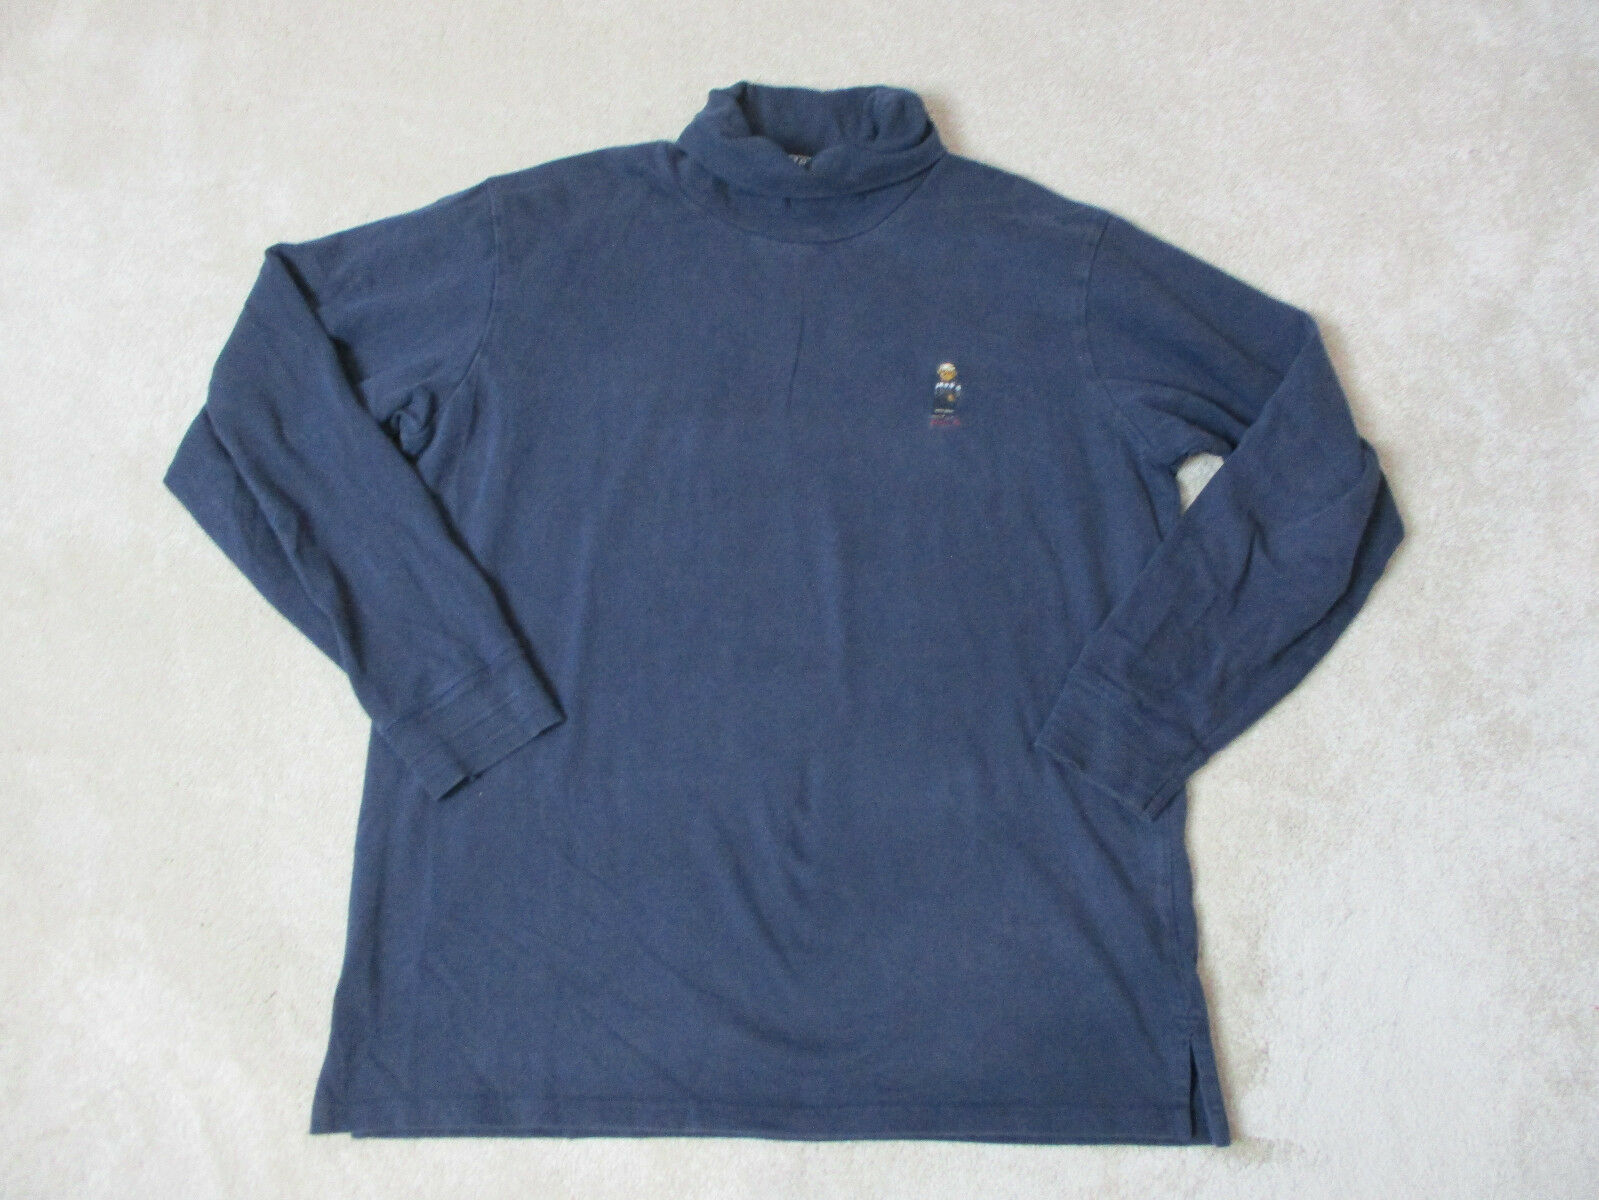 VINTAGE Ralph Lauren Polo Bear Long Sleeve Shirt Adult Extra Large bluee Mens 90s